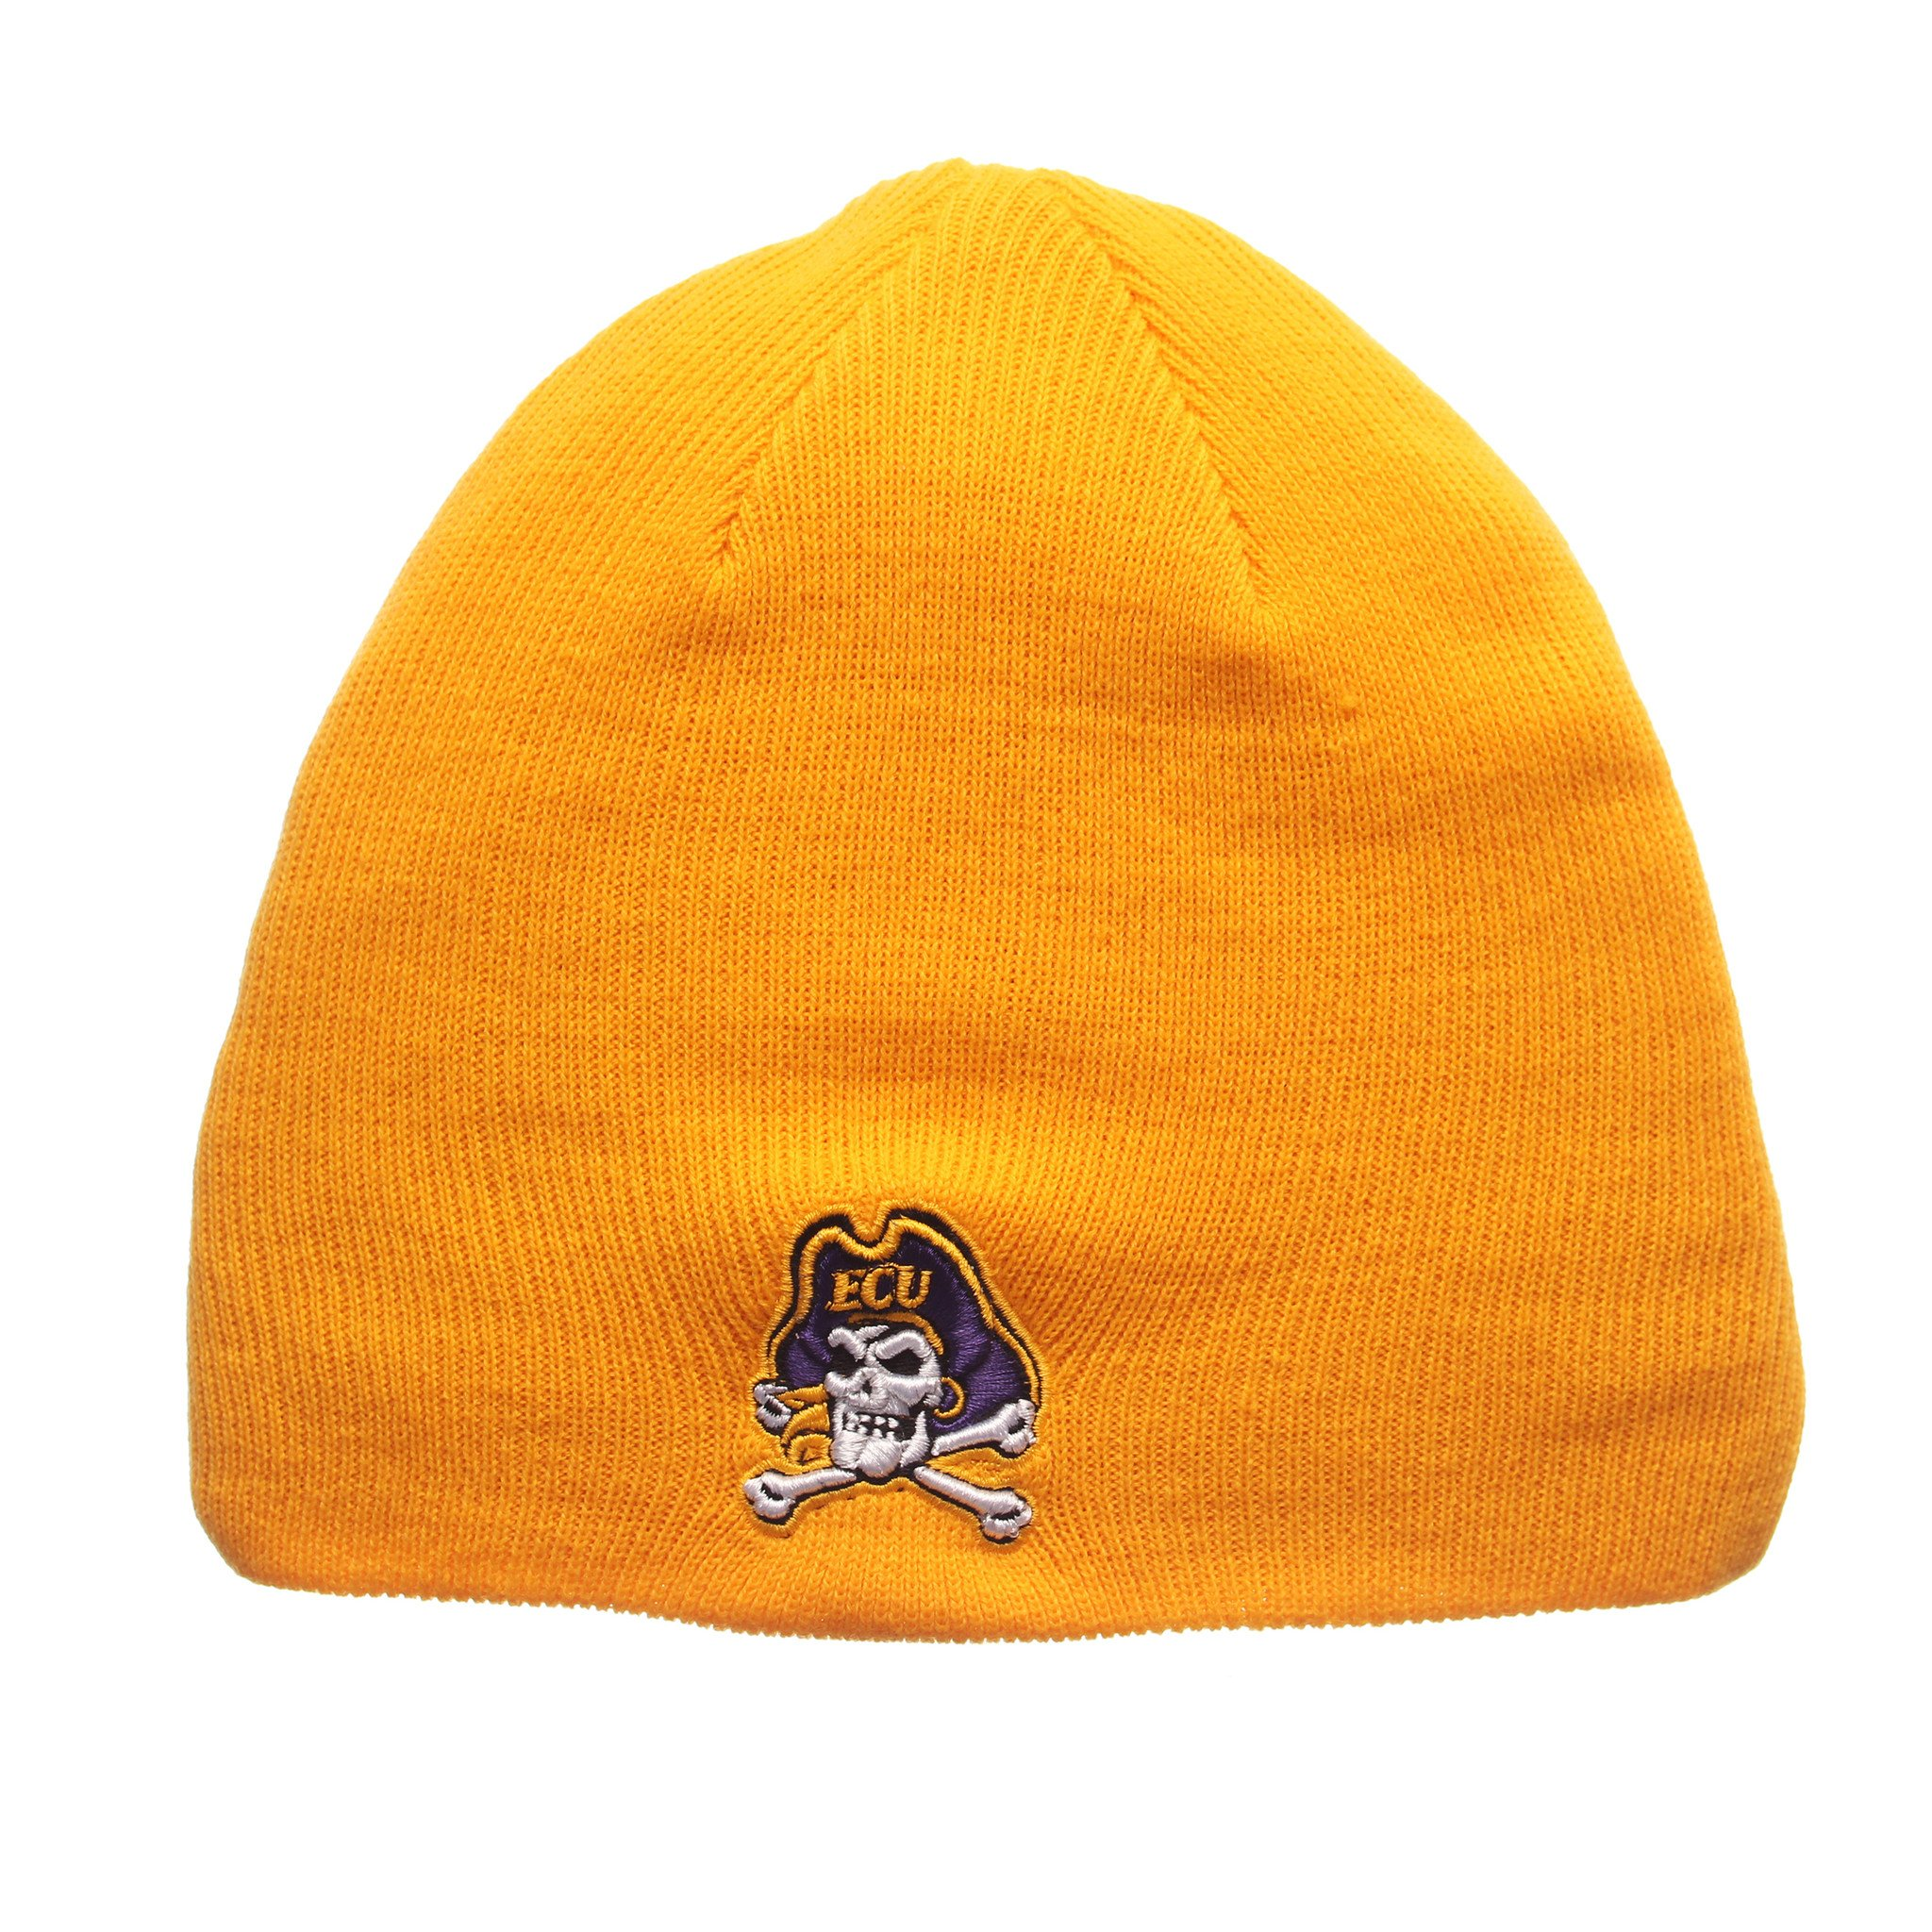 East Carolina Pirates Official NCAA Edge Adjustable Beanie Knit Sock Hat by Zephyr 267028